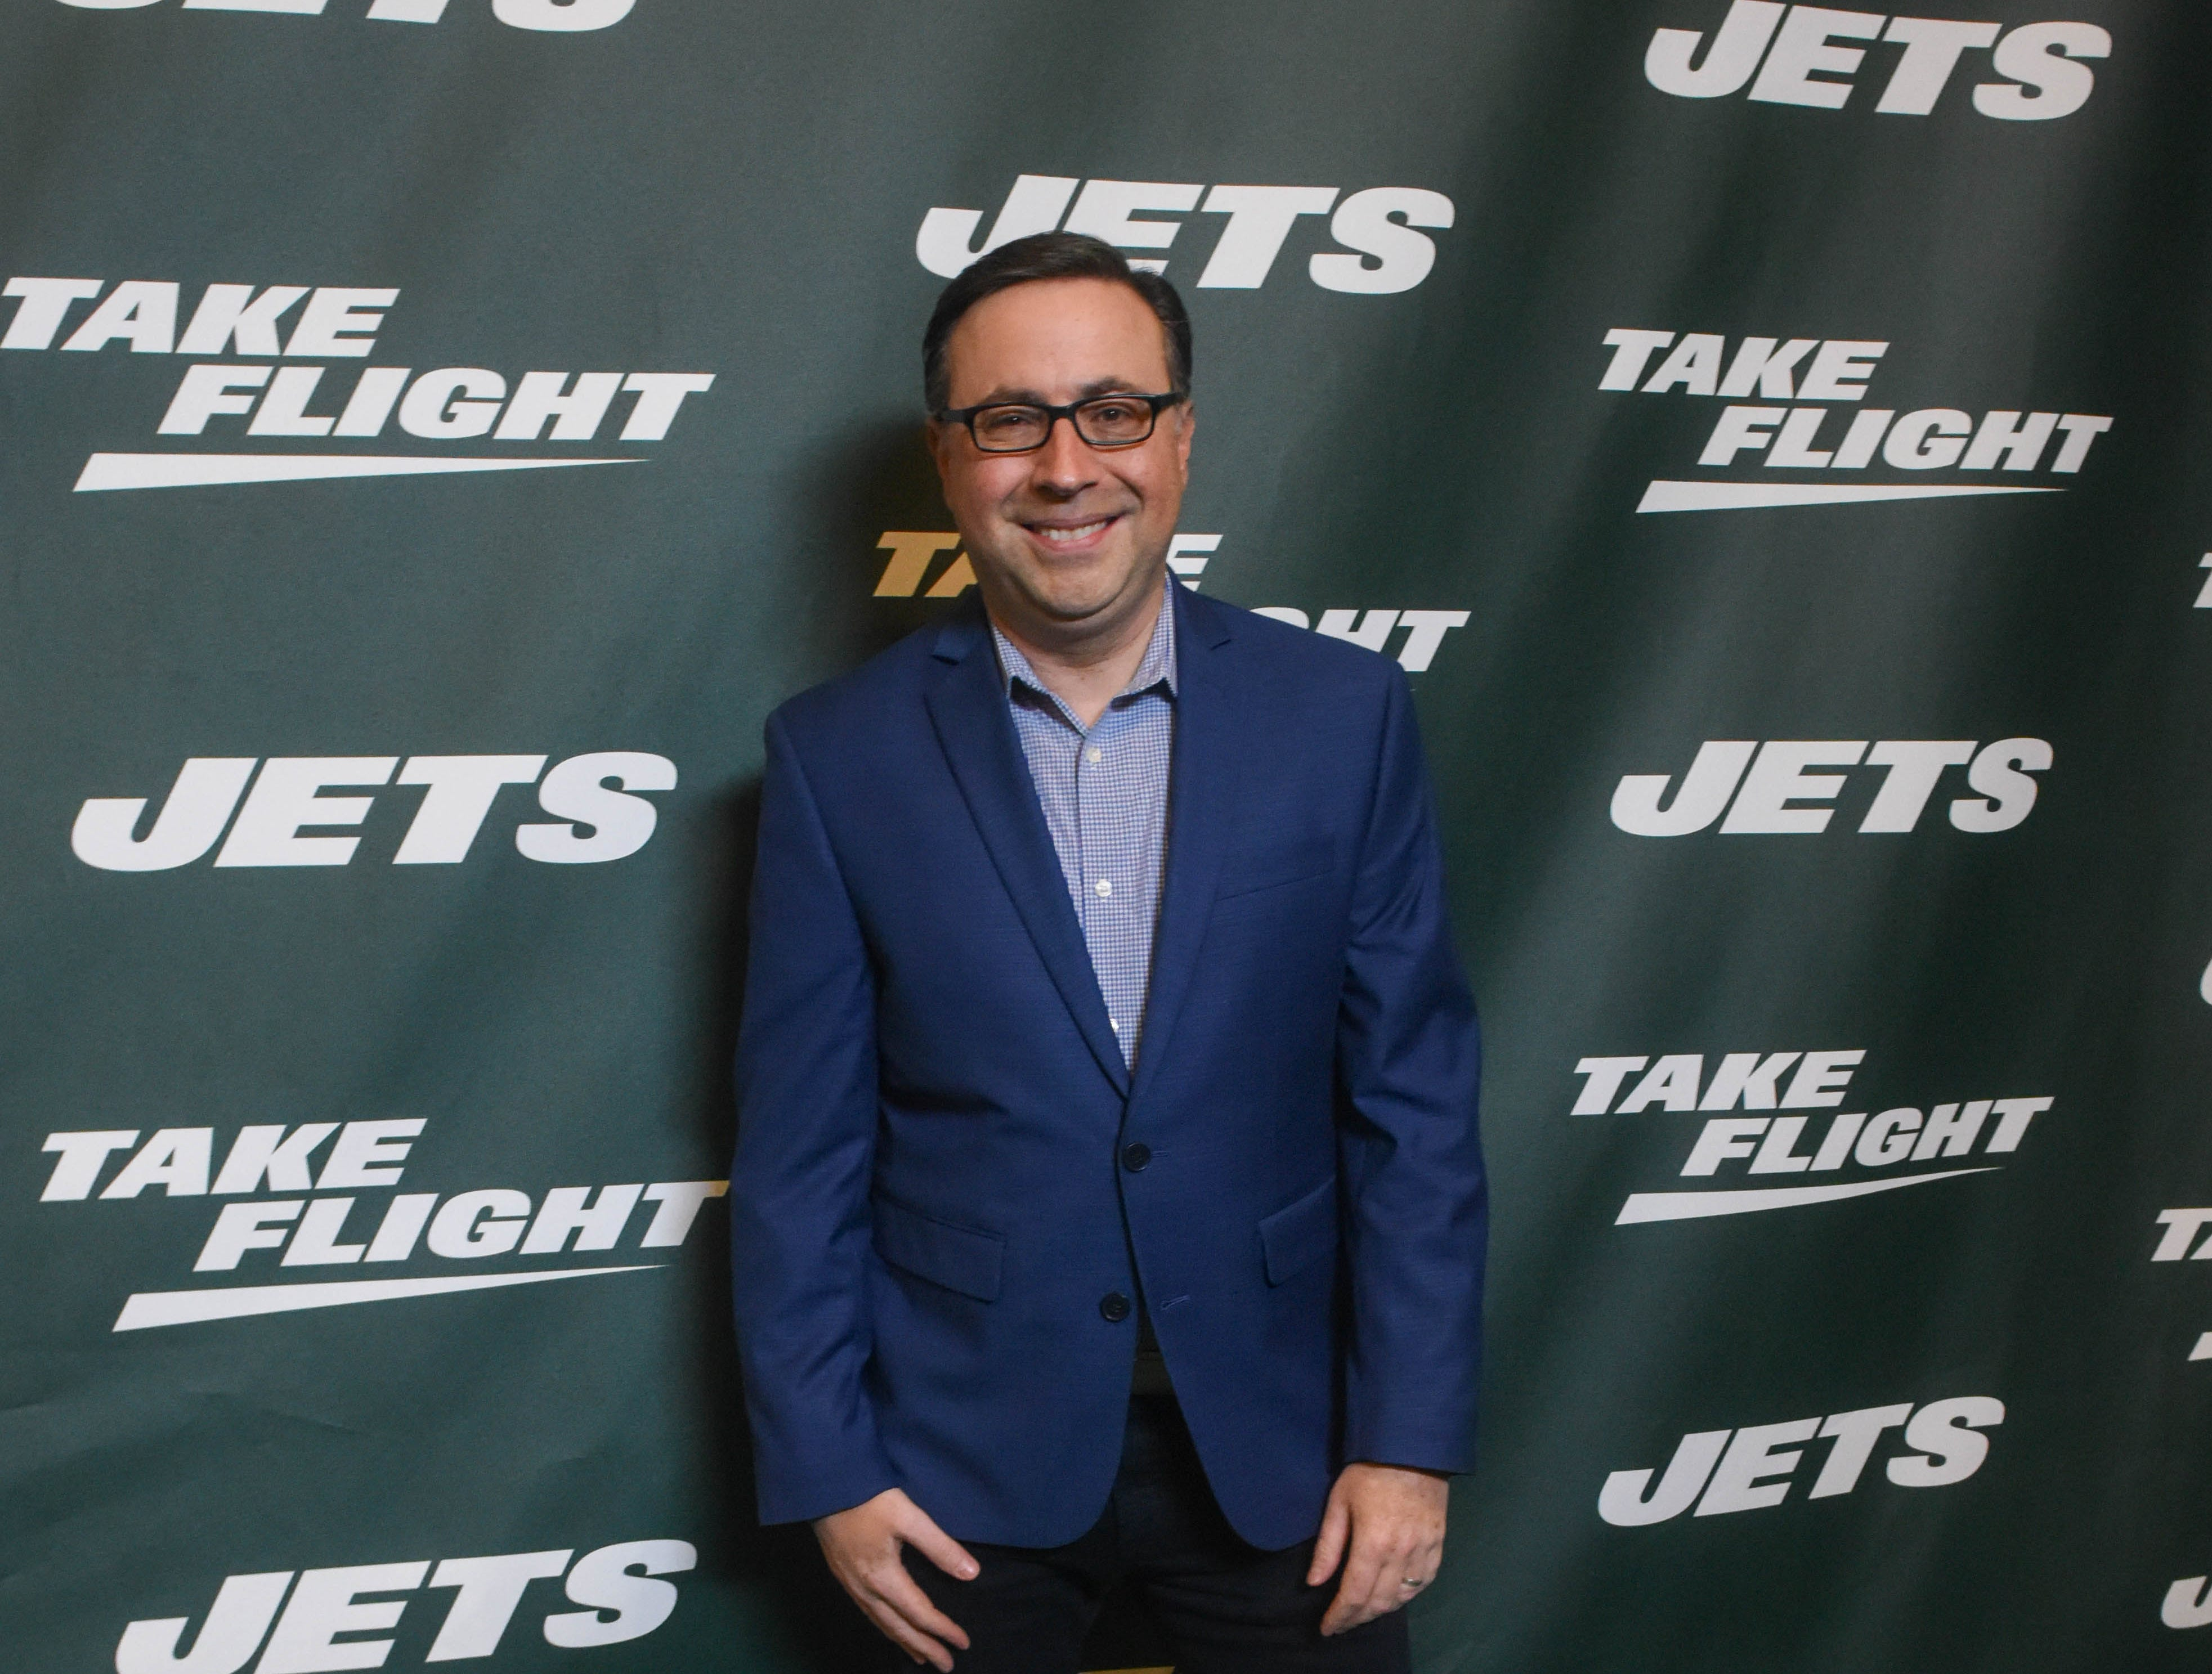 Ian Eagle. The NY Jets unveiled their new football uniforms with an event hosted by JB Smoove at Gotham Hall in New York. 04/05/2019